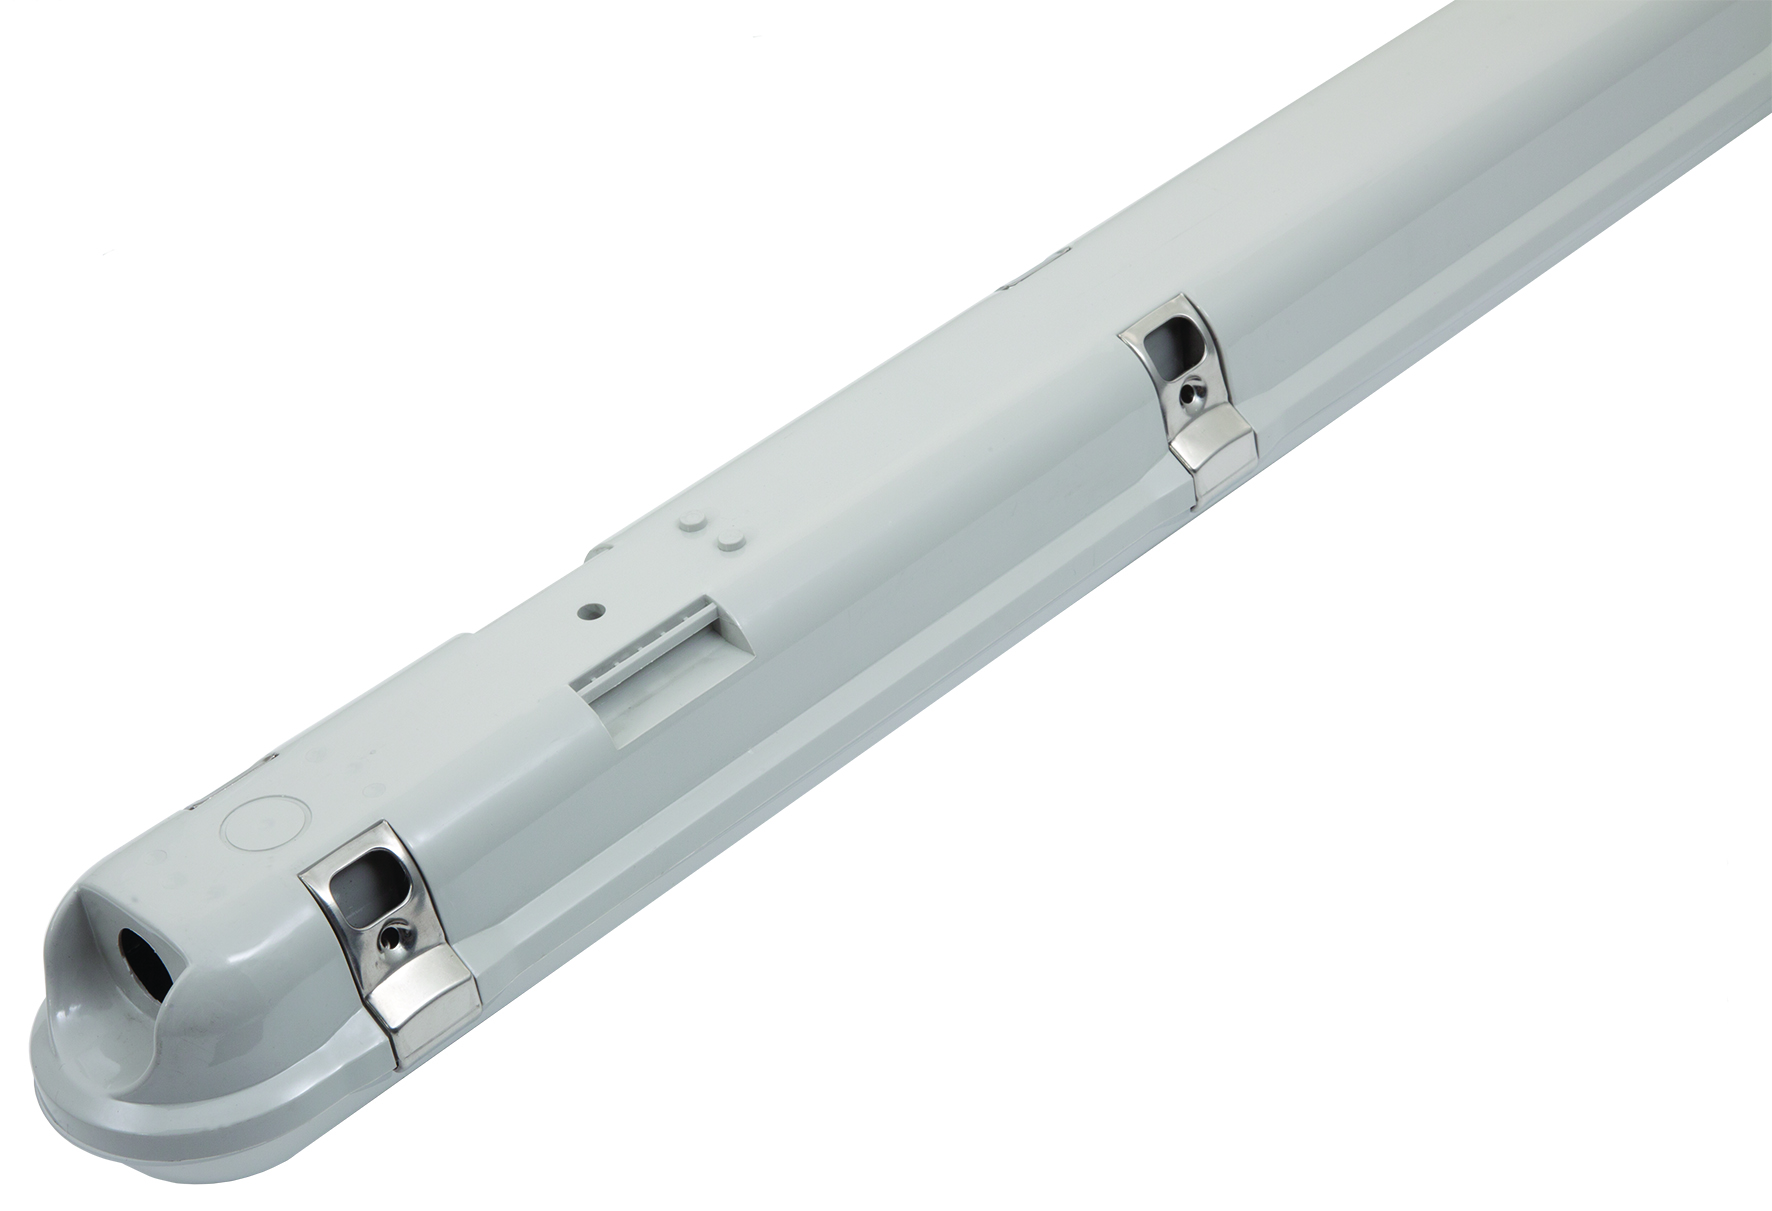 REELTECH IP65 single batten LED linear strip light rear v2